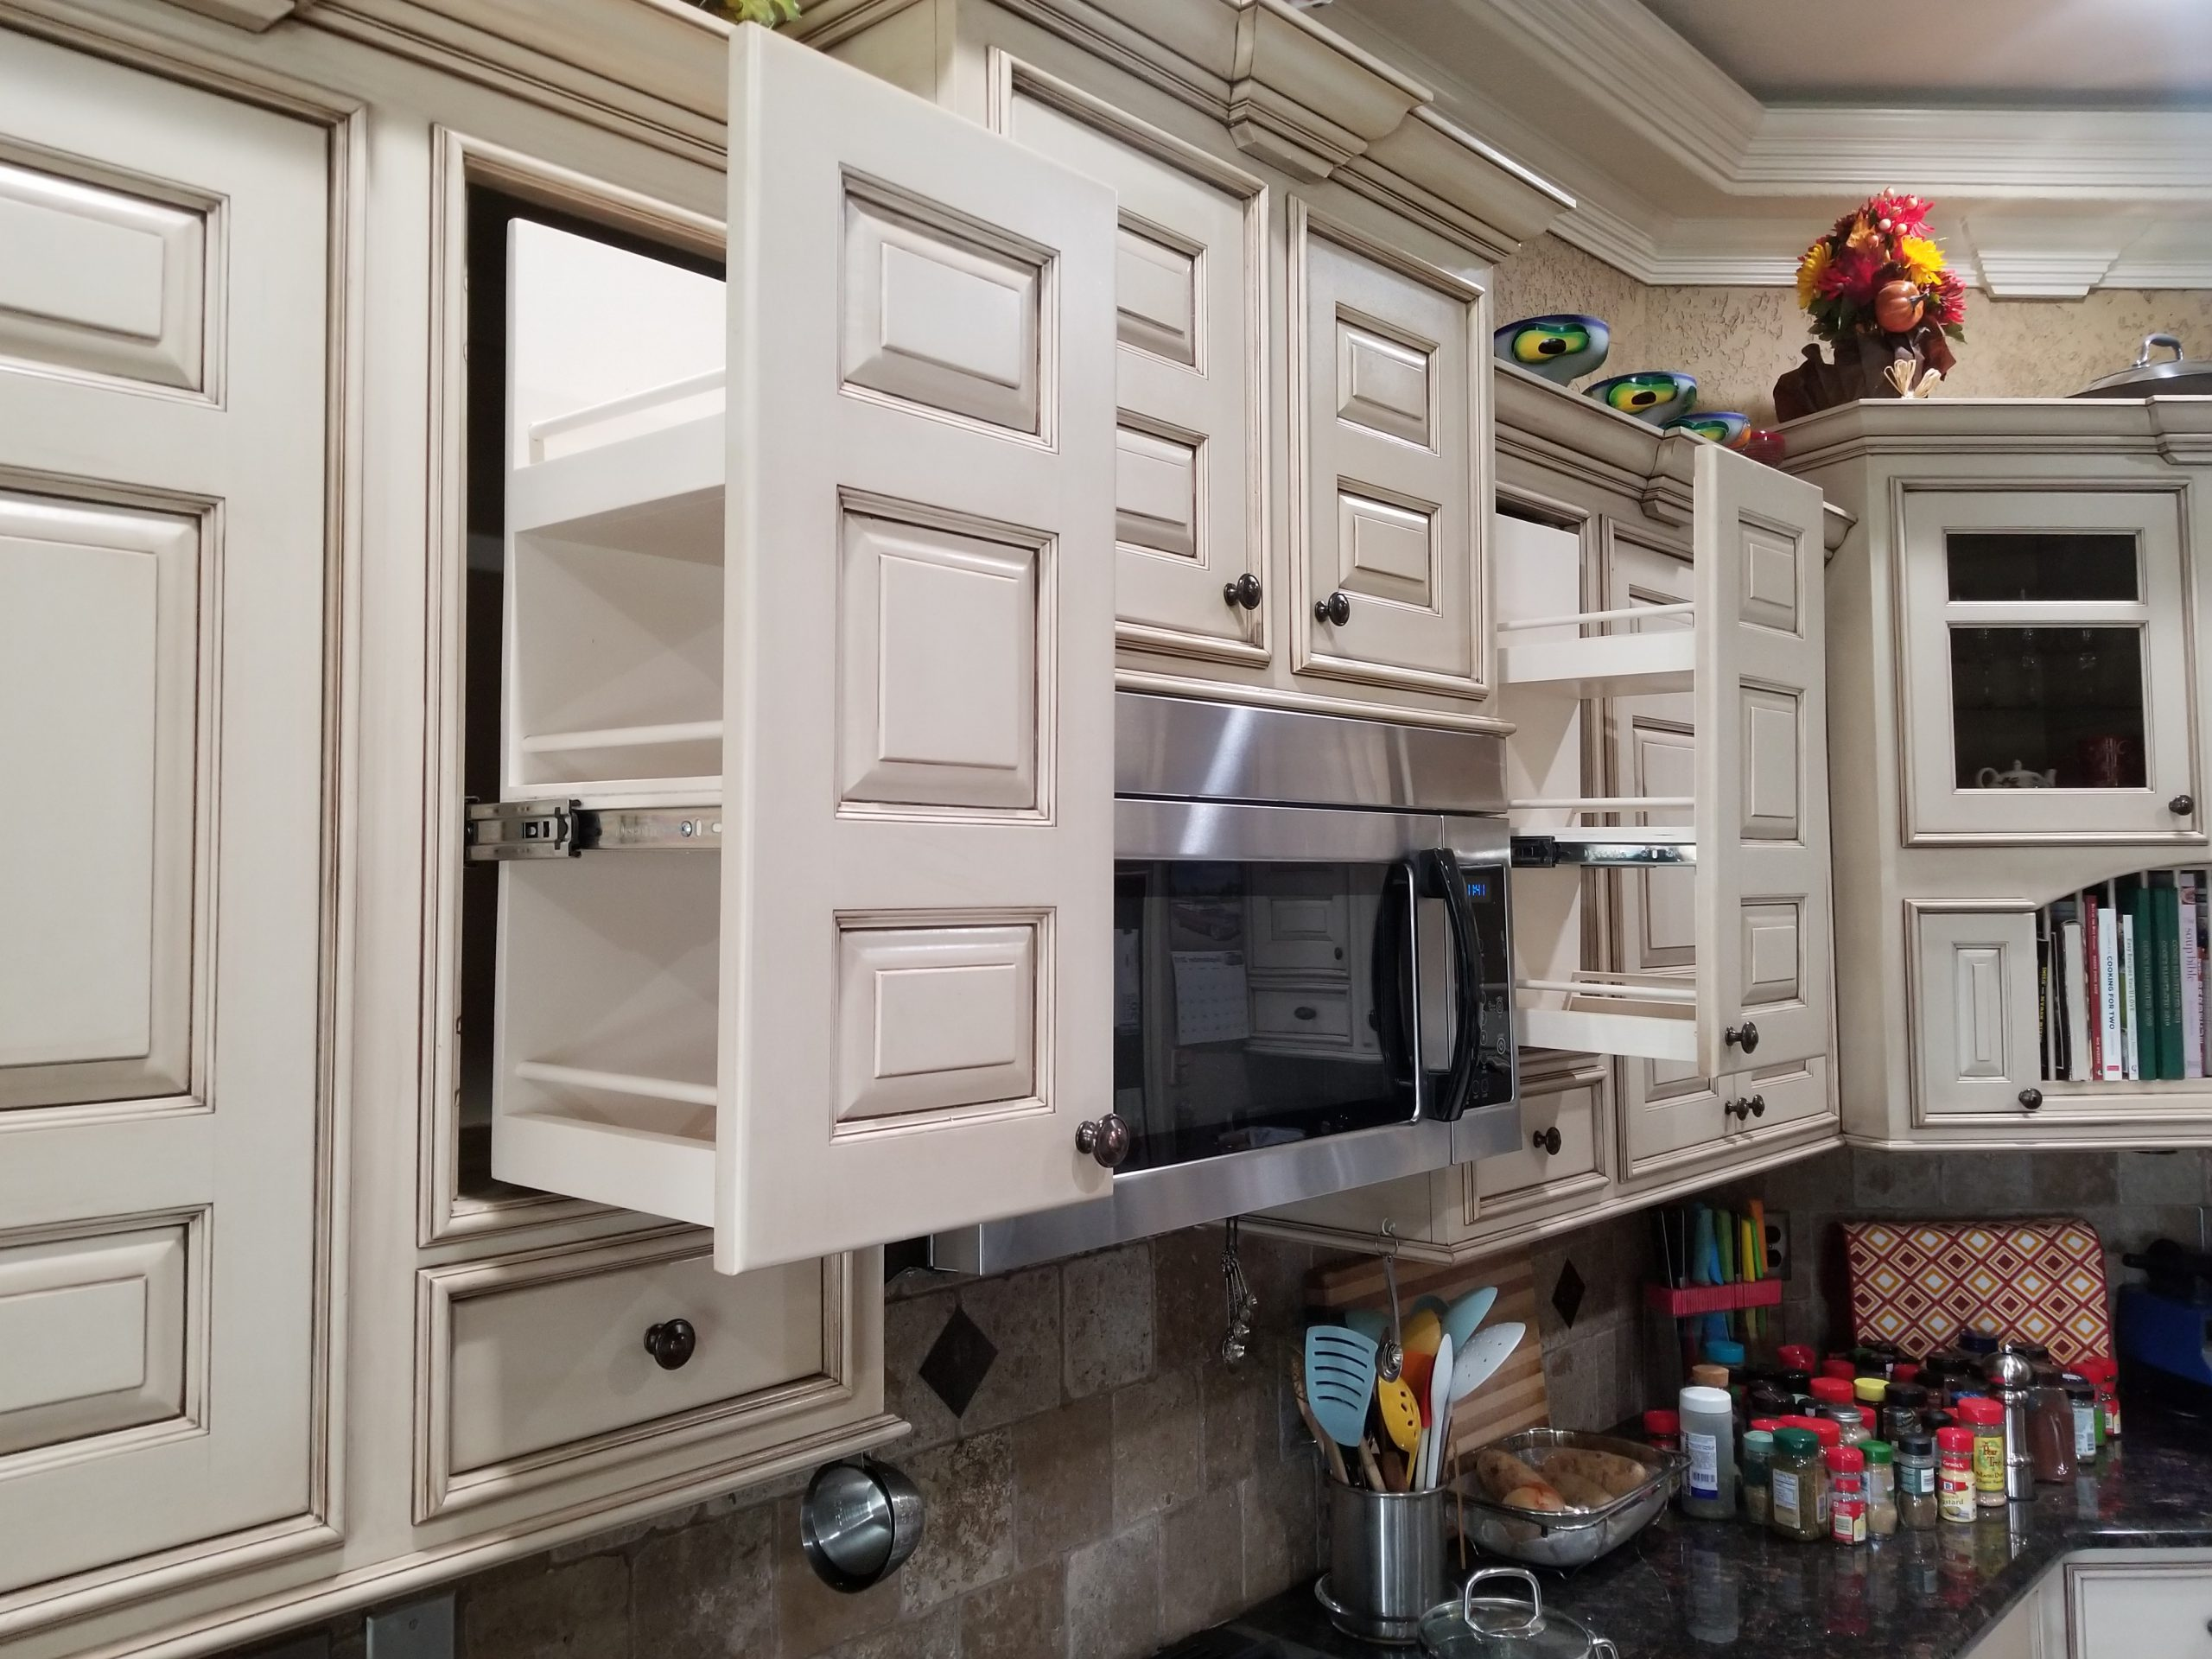 Buy custom traditional kitchen cabinets factory direct in Wickatunk NJ, Buy custom slab panel kitchen cabinets factory direct in Wickatunk NJ, Buy custom flat panel kitchen cabinets factory direct in Wickatunk NJ